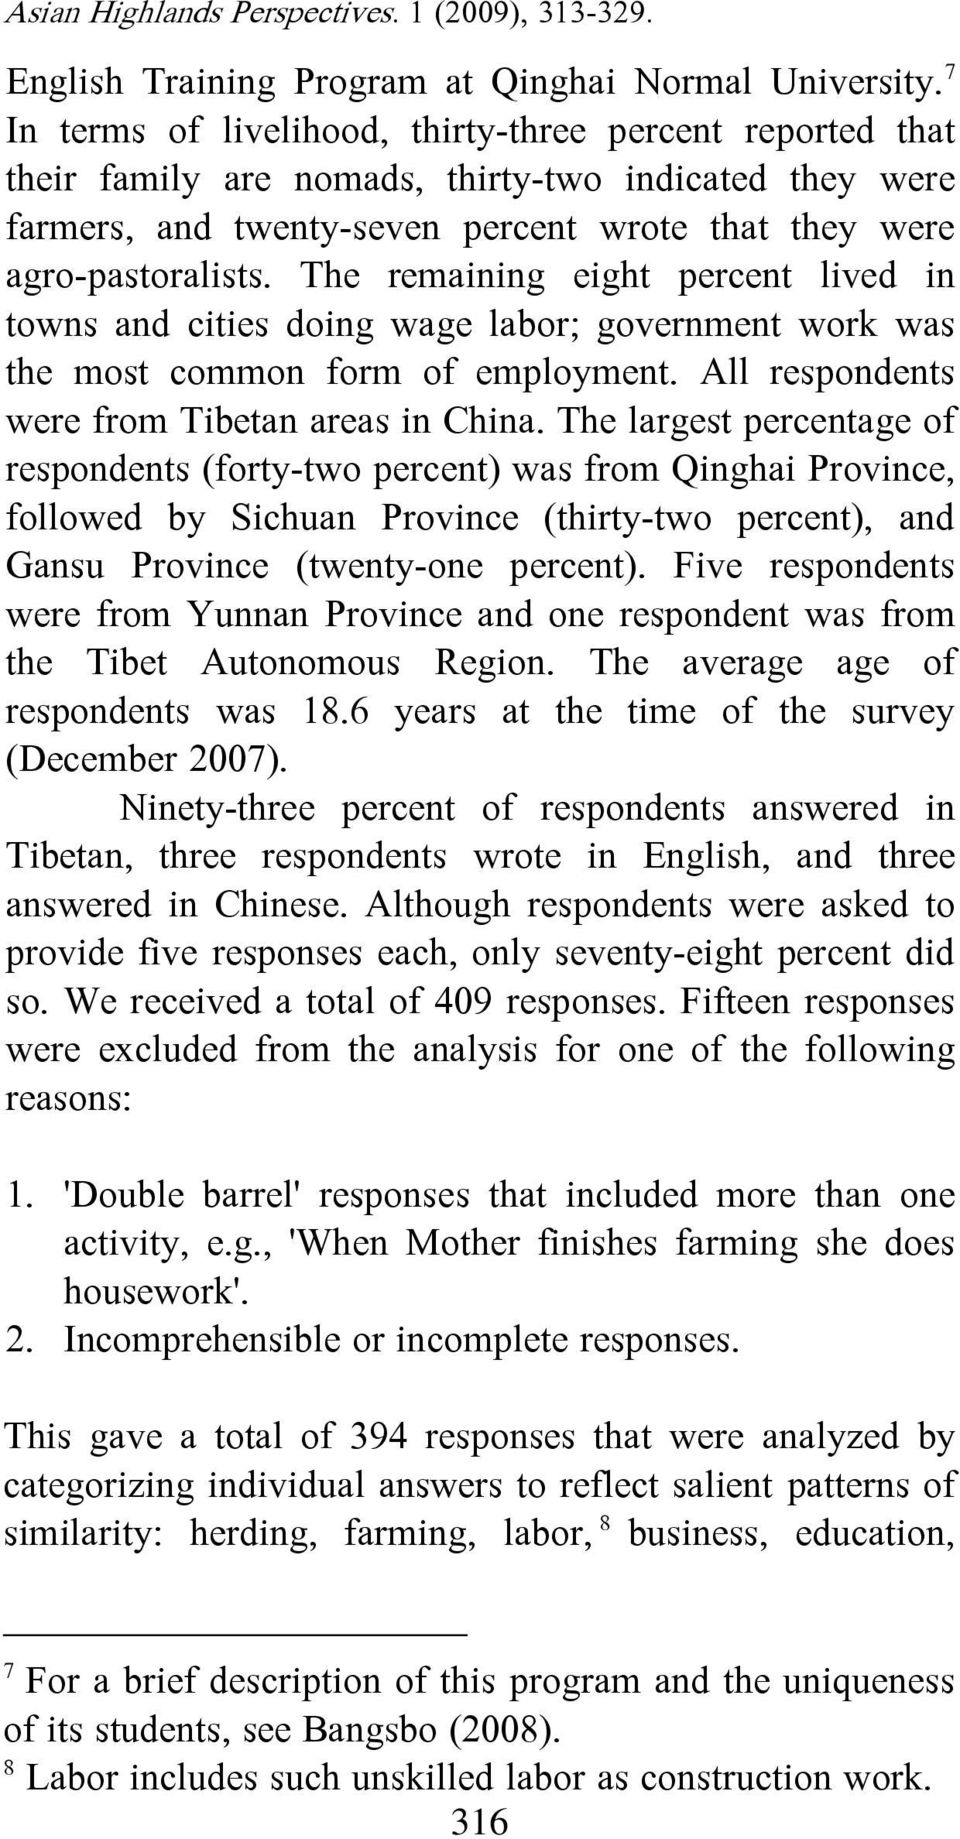 The remaining eight percent lived in towns and cities doing wage labor; government work was the most common form of employment. All respondents were from Tibetan areas in China.